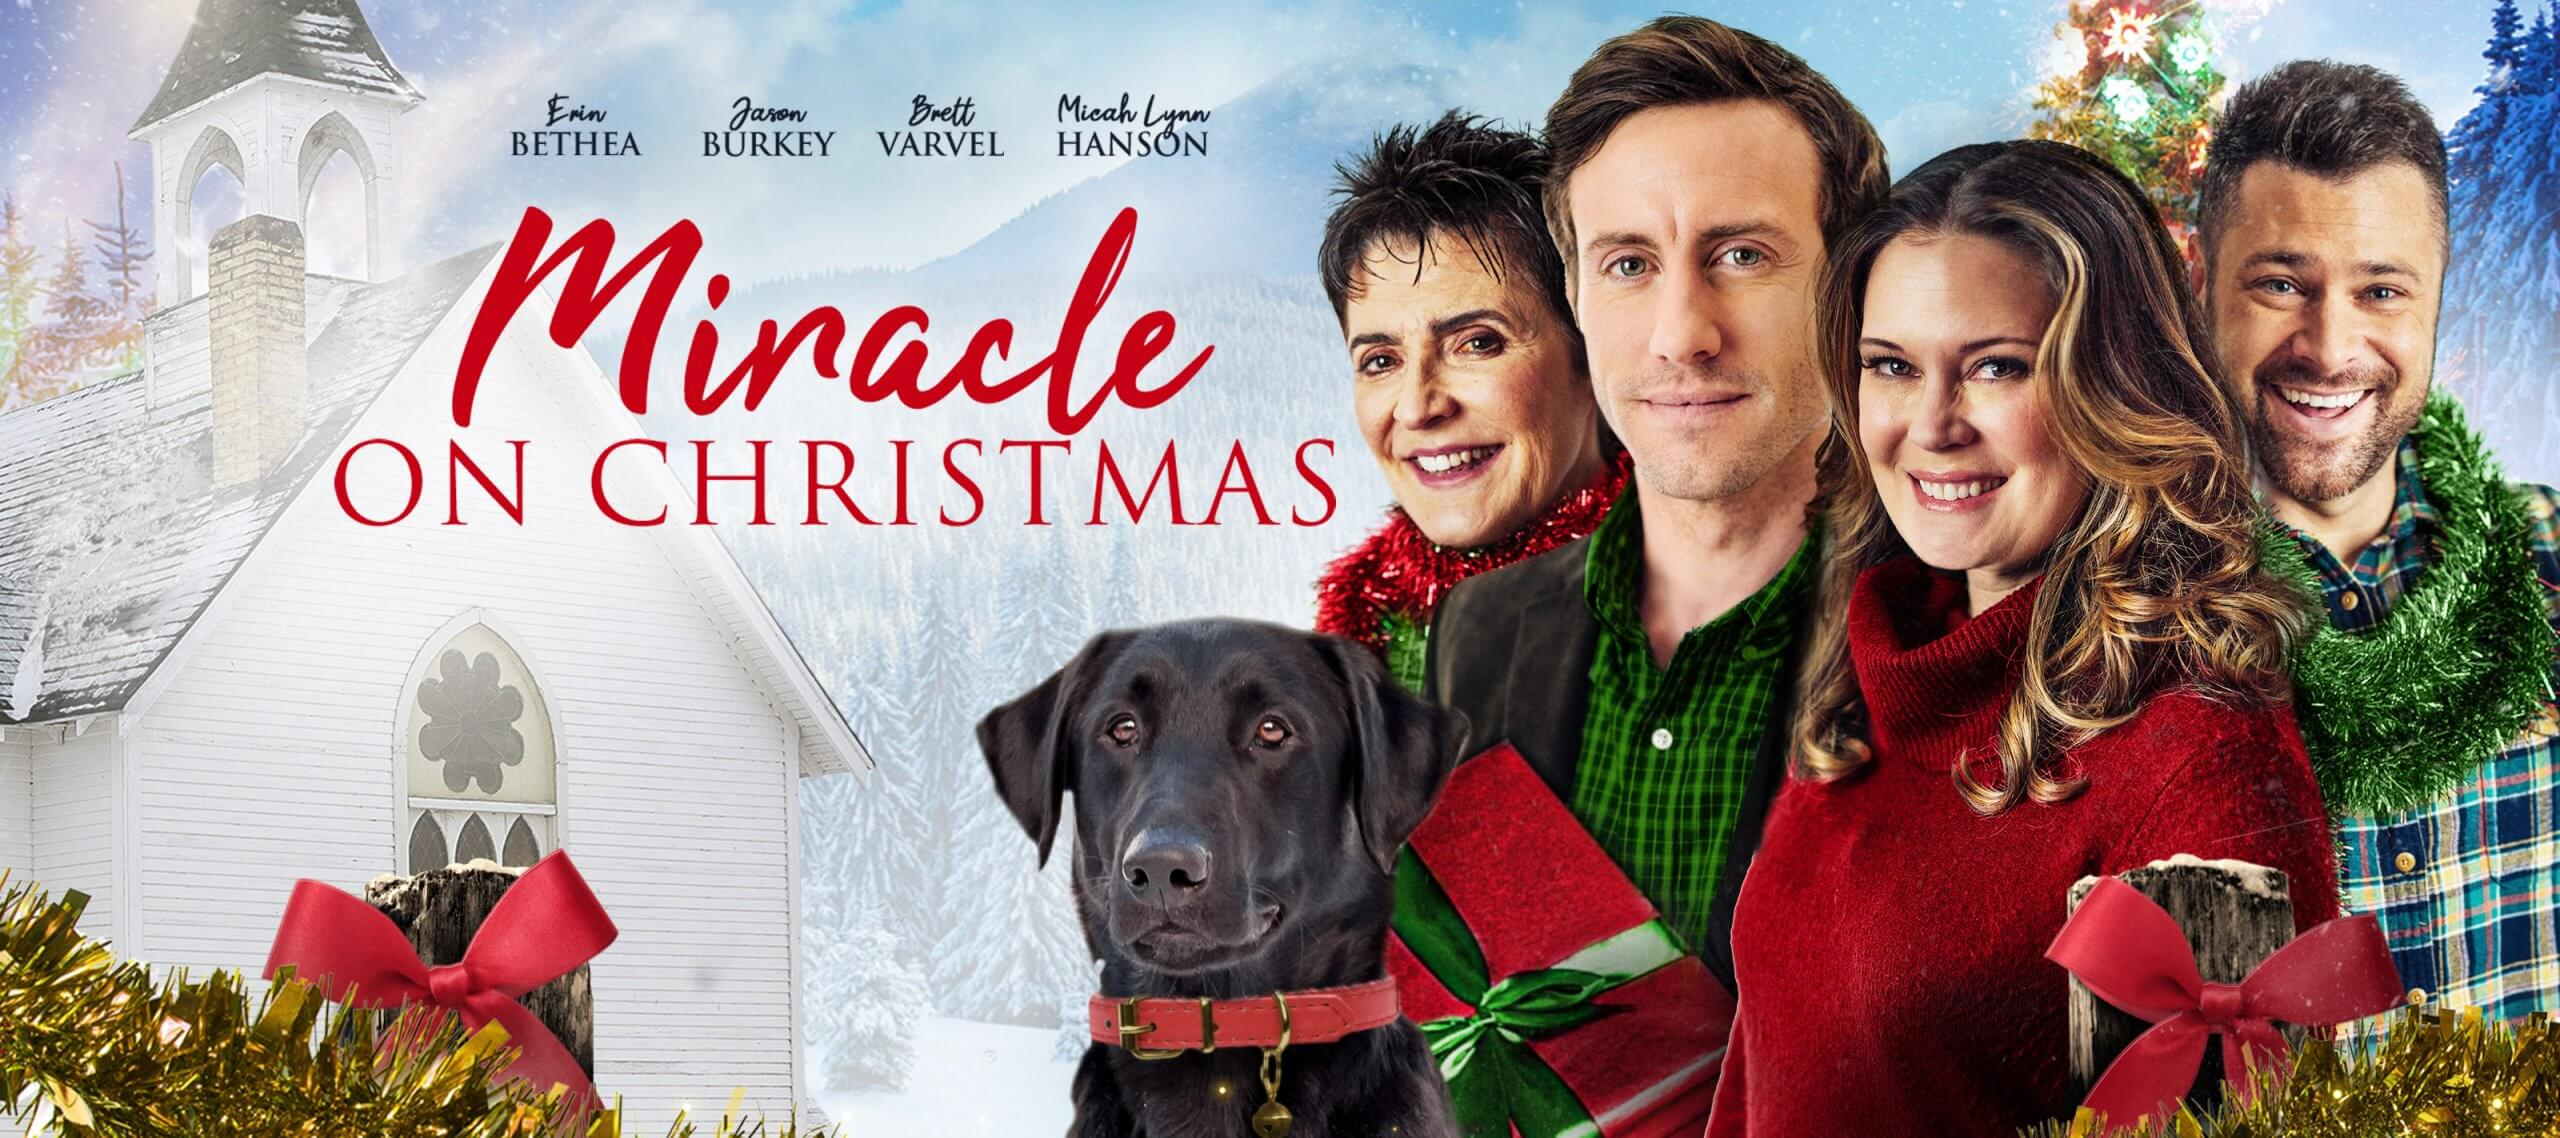 Miracle on Christmas 3200x1422 1 scaled HOME